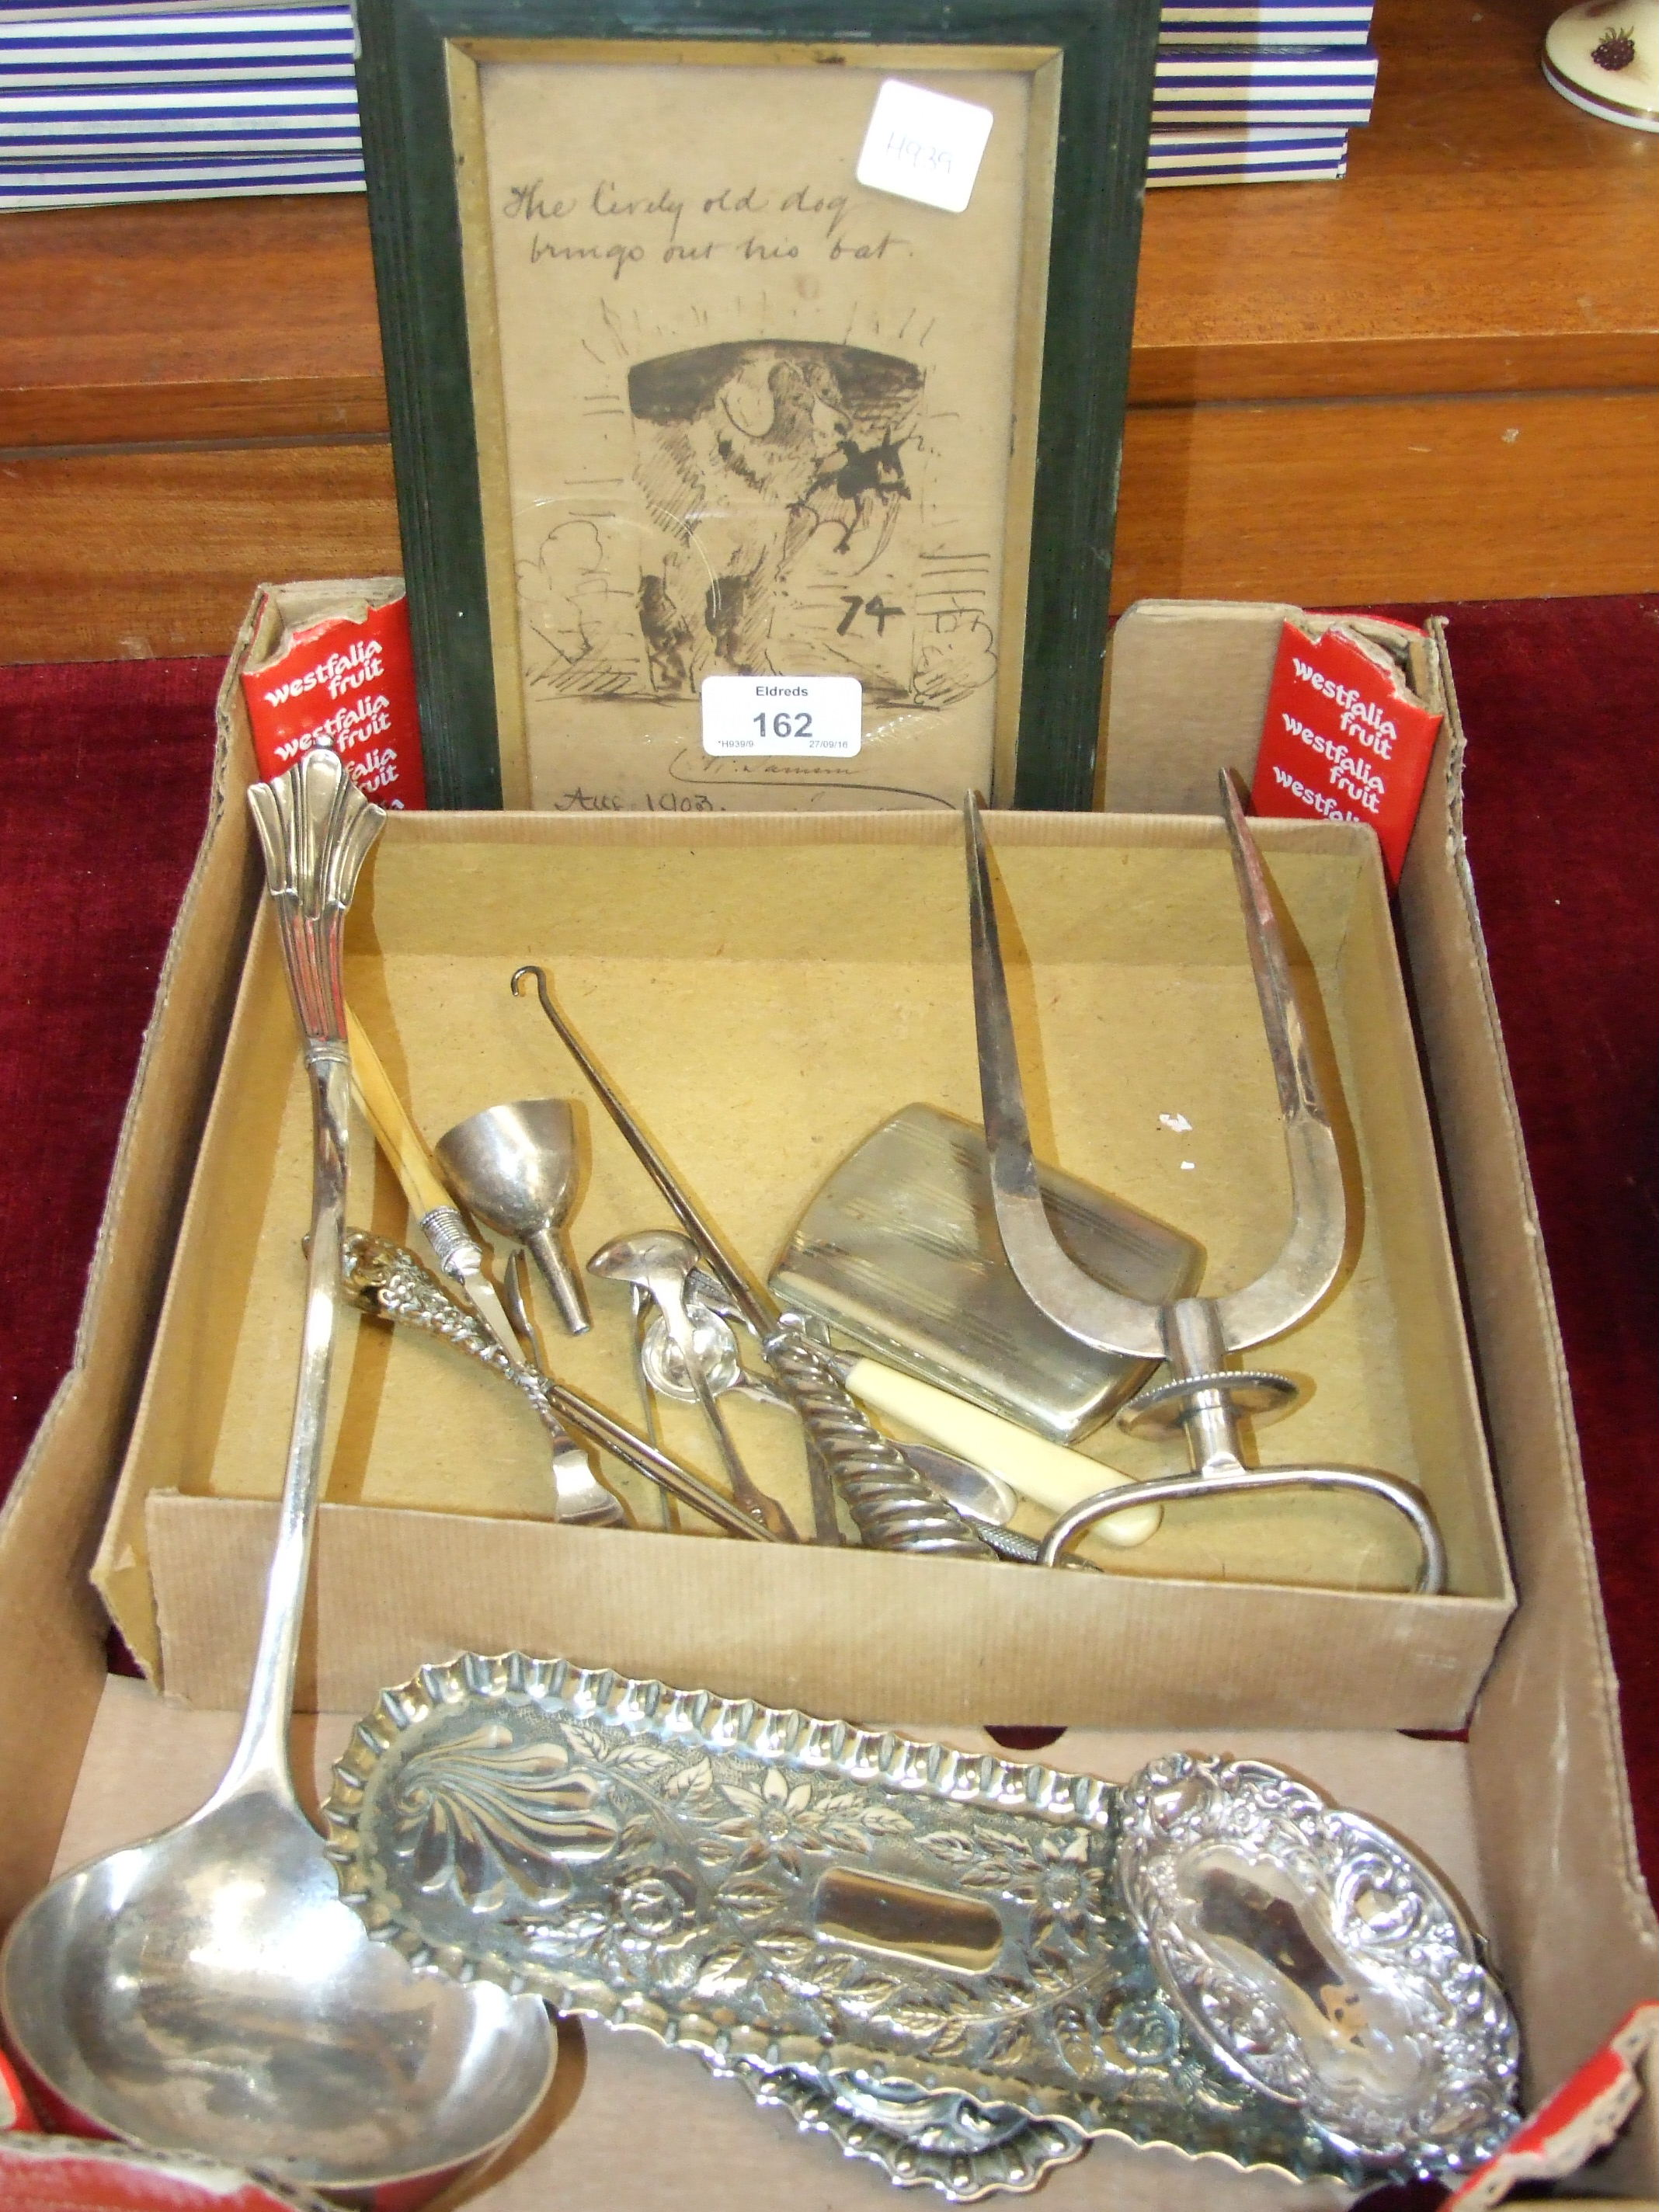 Lot 162 - A plated joint lifter, a plated ladle, other plated ware and a framed pen and ink sketch 'The lively